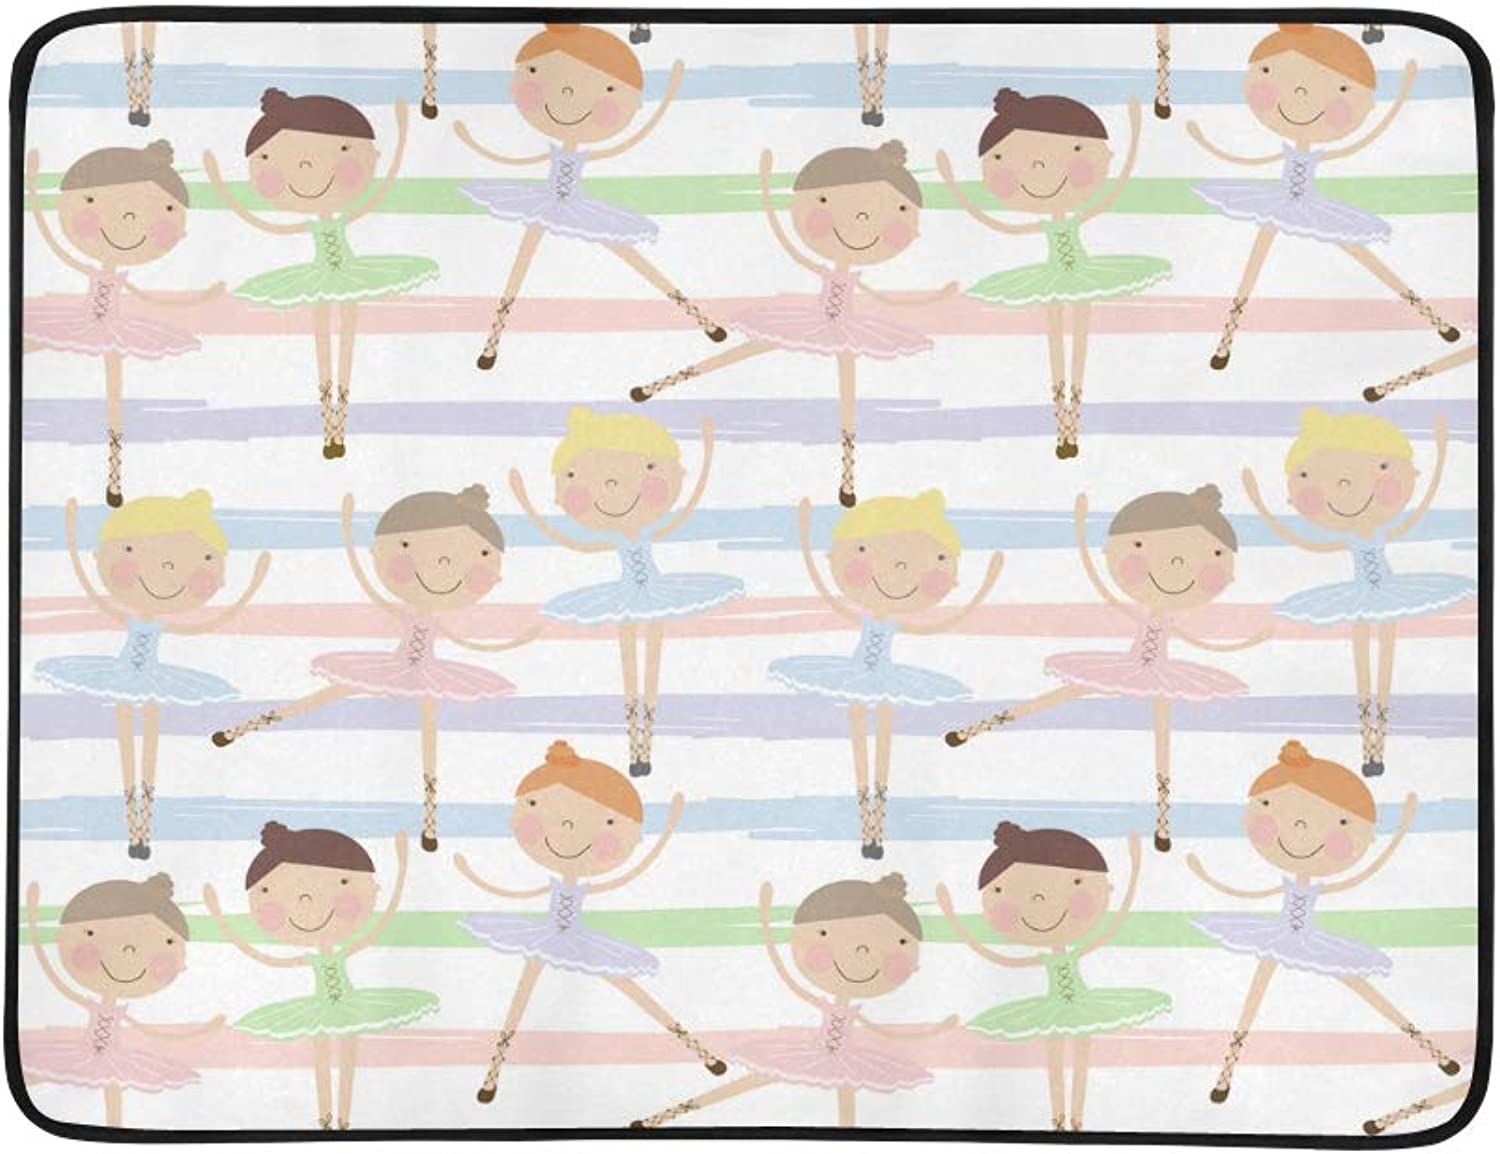 43064fd80888 Wearing A Ballet shoes and Crown Pattern Portable and Foldable Mat 60x78  Inch Handy Mat for Camping Picnic Beach Indoor Outdoor Travel Skirt, ...